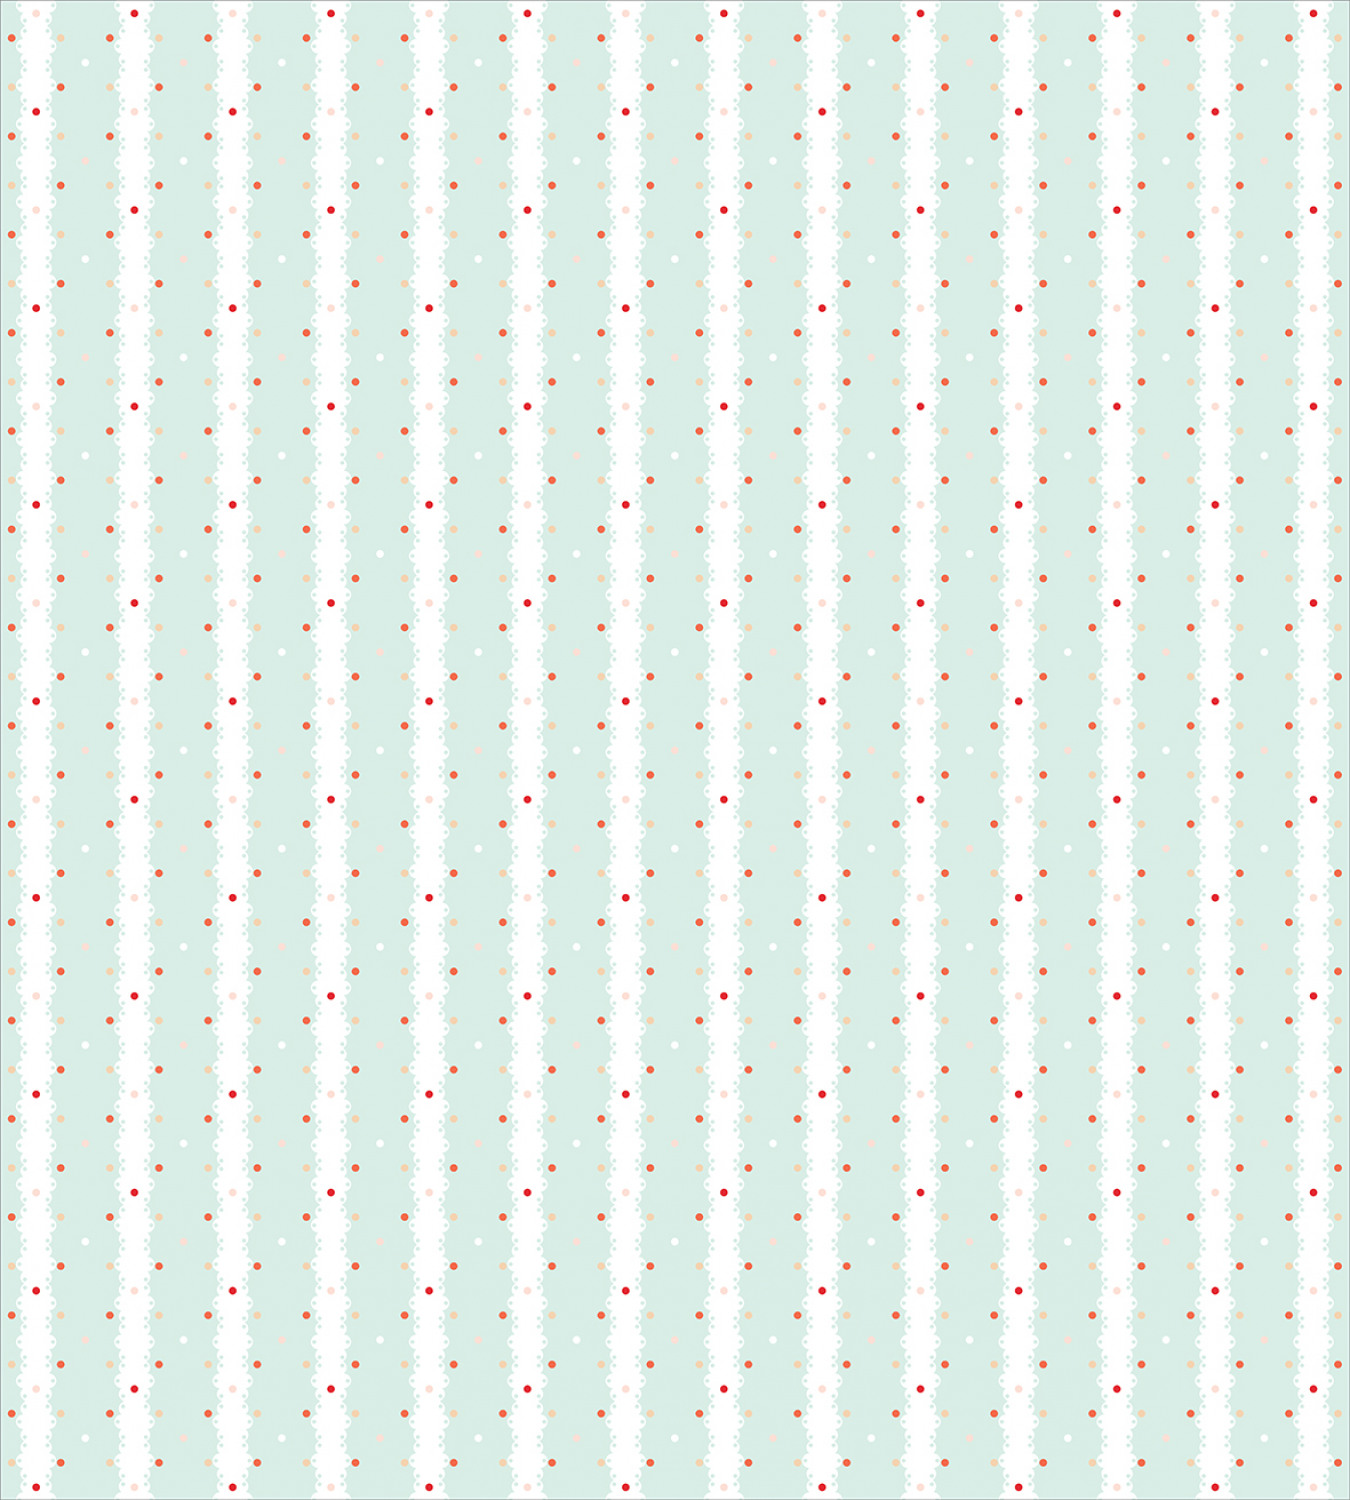 Teal-and-White-Duvet-Cover-Set-Twin-Queen-King-Sizes-with-Pillow-Shams-Ambesonne thumbnail 48